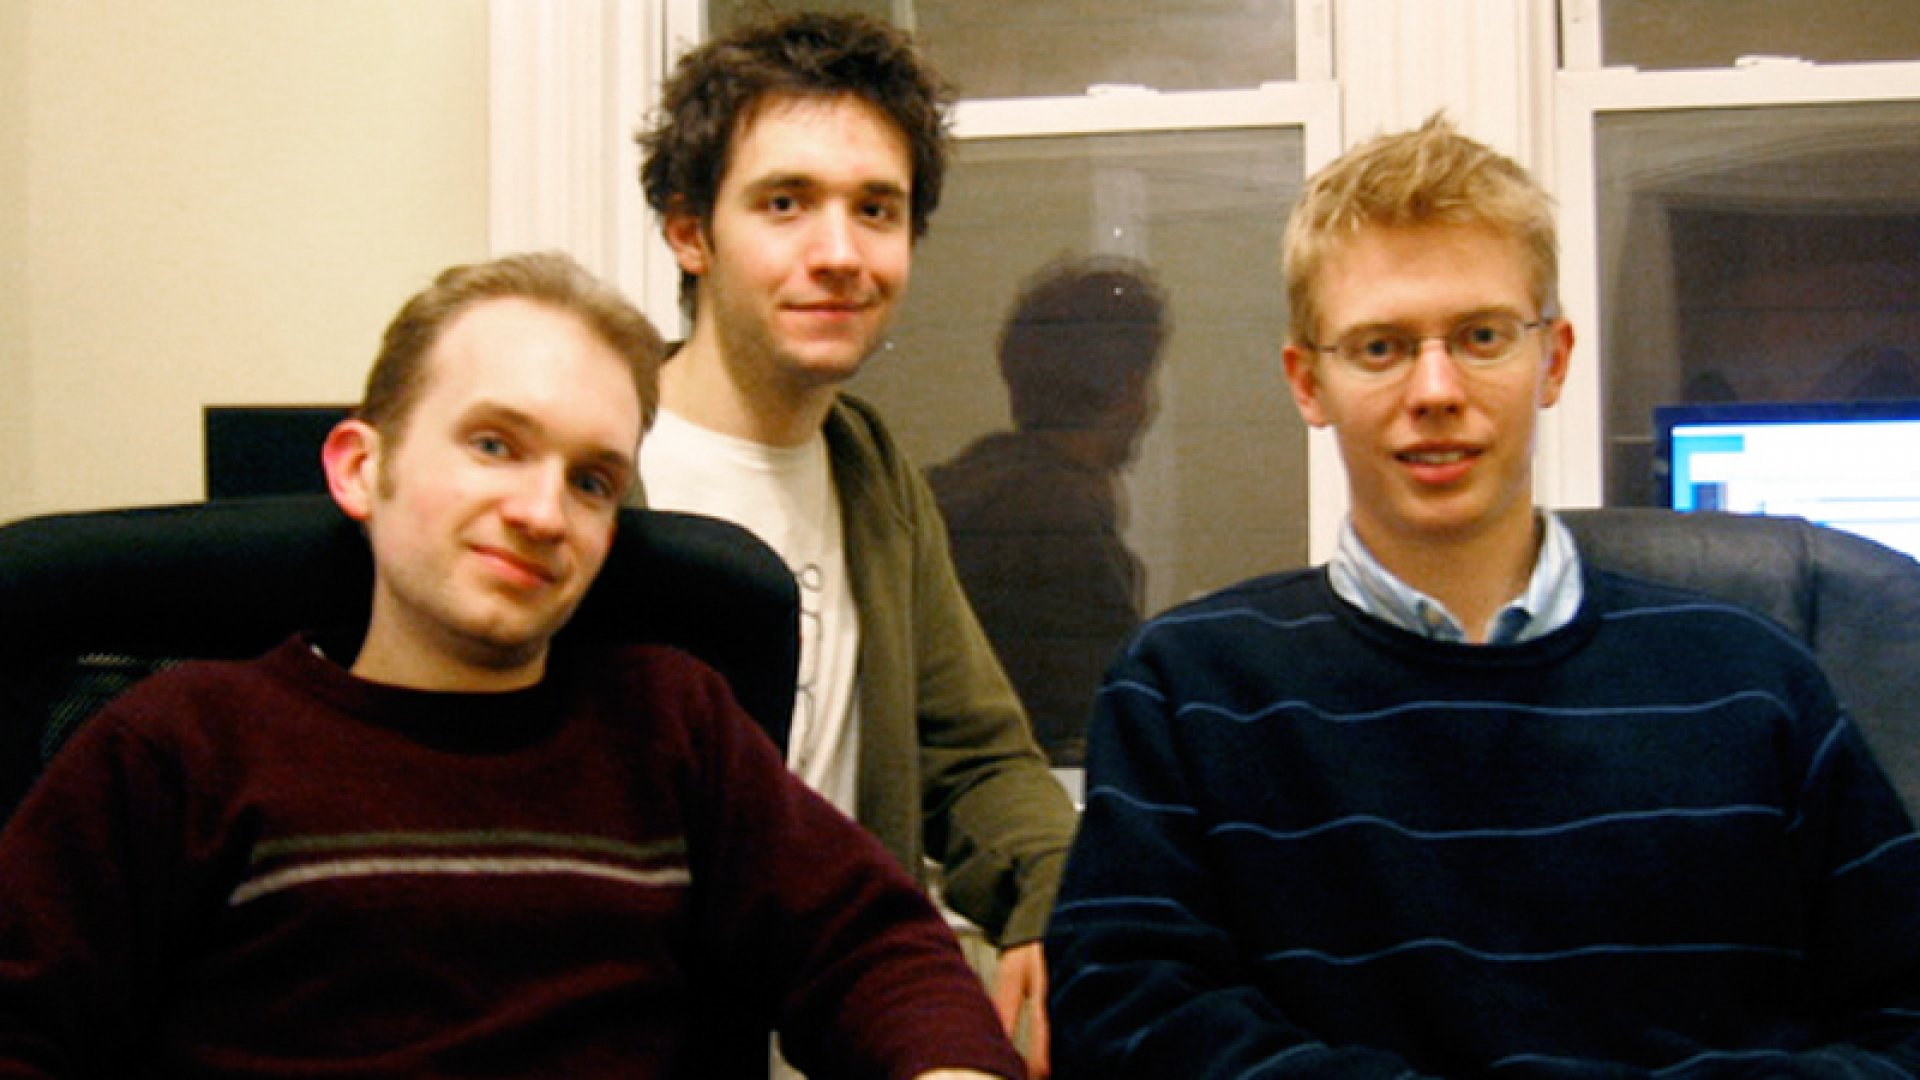 Another shot: Reddit co-founders Alexis Ohanian (at center) and Steve Huffman (at right), pictured here in 2006, who are today the site's executive chairman and chief executive, are now also joined by Christopher Slowe (at left), their longtime friend and colleague.